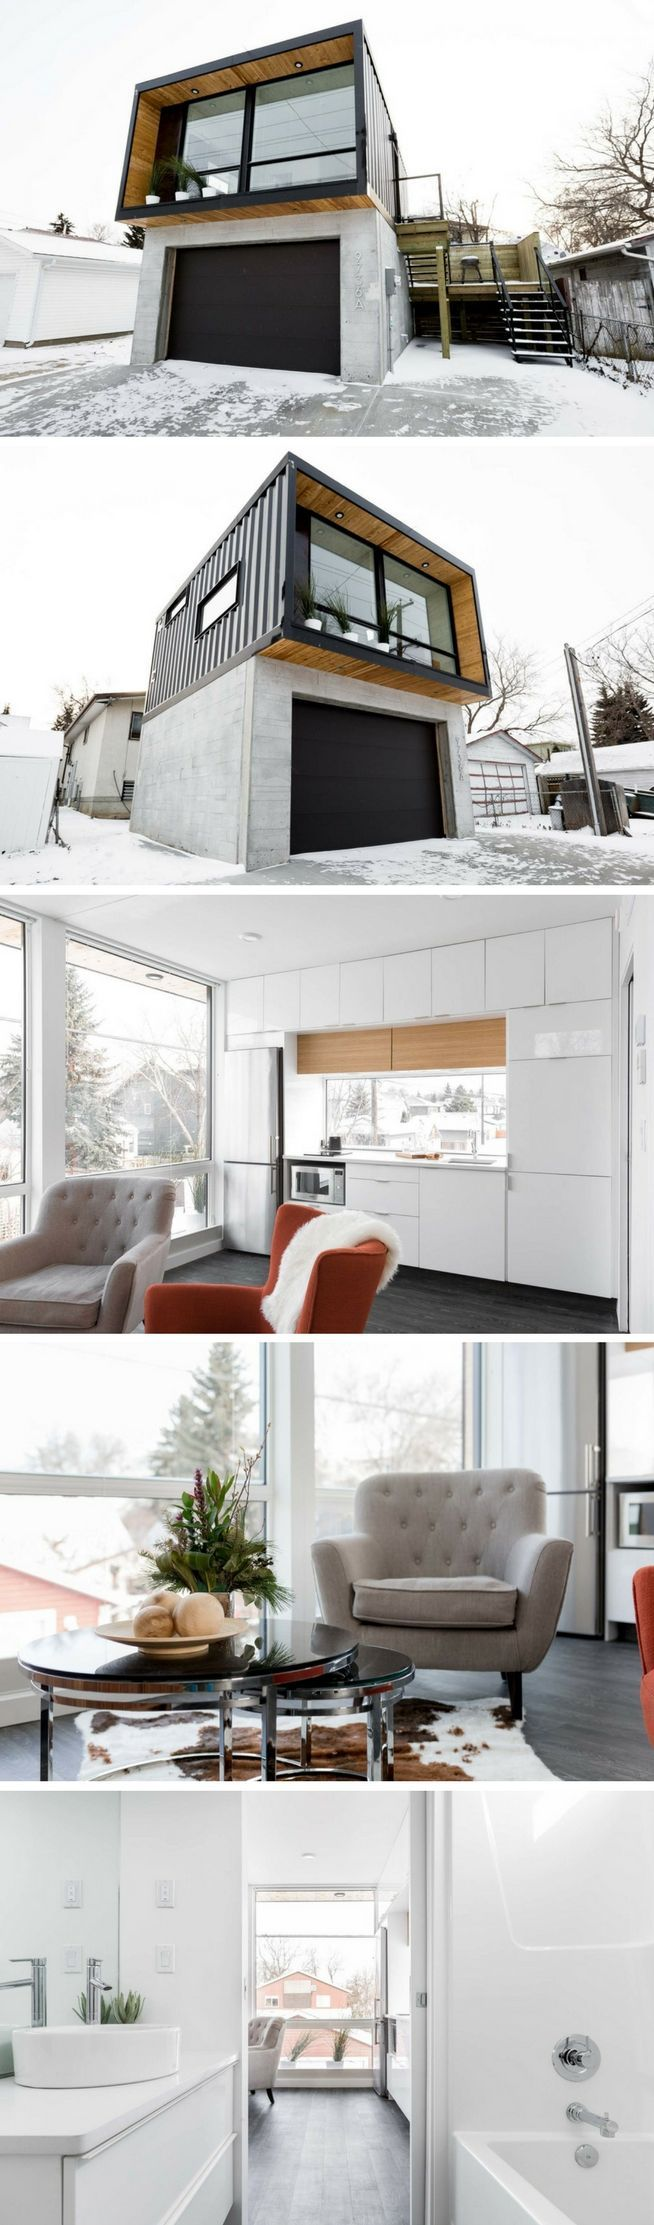 HO2 Tiny Shipping Container House | Homespiration | Pinterest ...